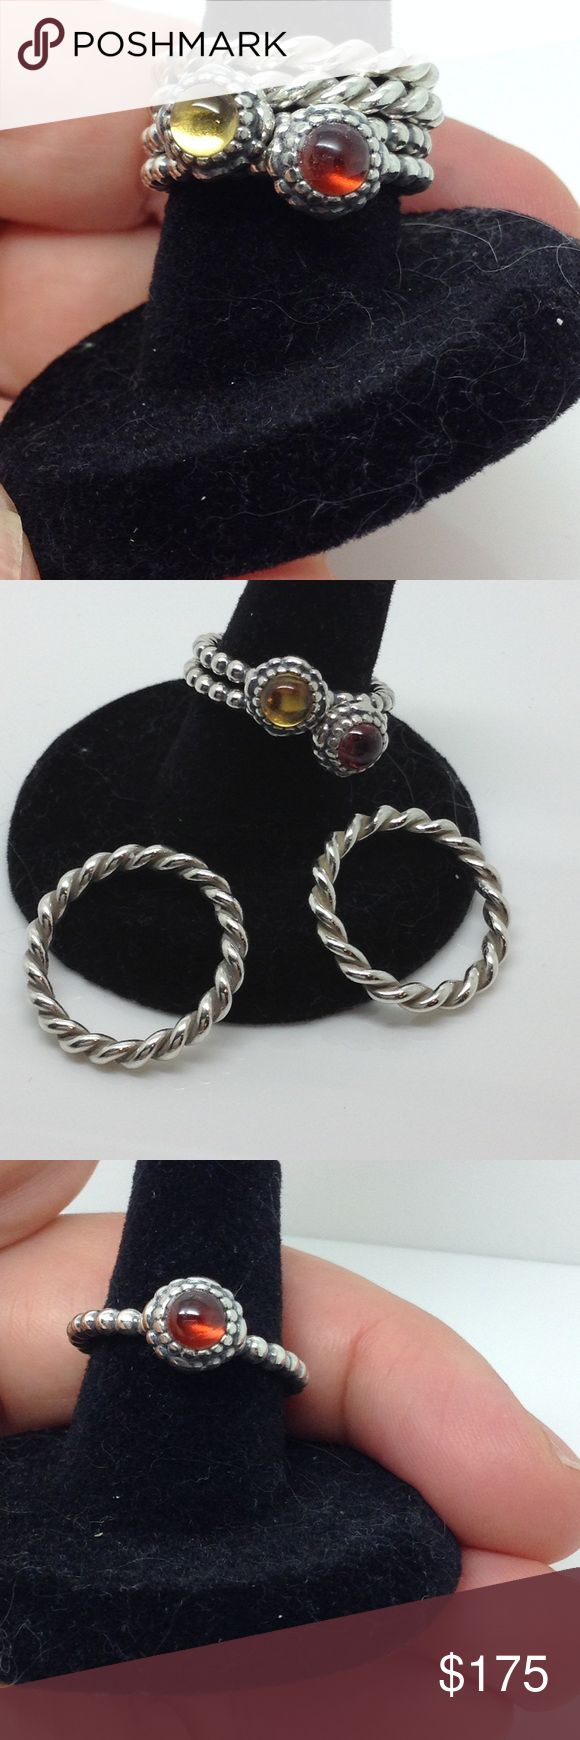 Set of 4 Pandora Sterling stacking fashion rings Firm price. Intertwined PANDORA Ring in sterling silver offers a twisted design that is also perfect for stacking with other rings in the PANDORA collection. January's Red garnet and November's yellow citrine birthstone Sterling silver stacking rings pandora Jewelry Rings